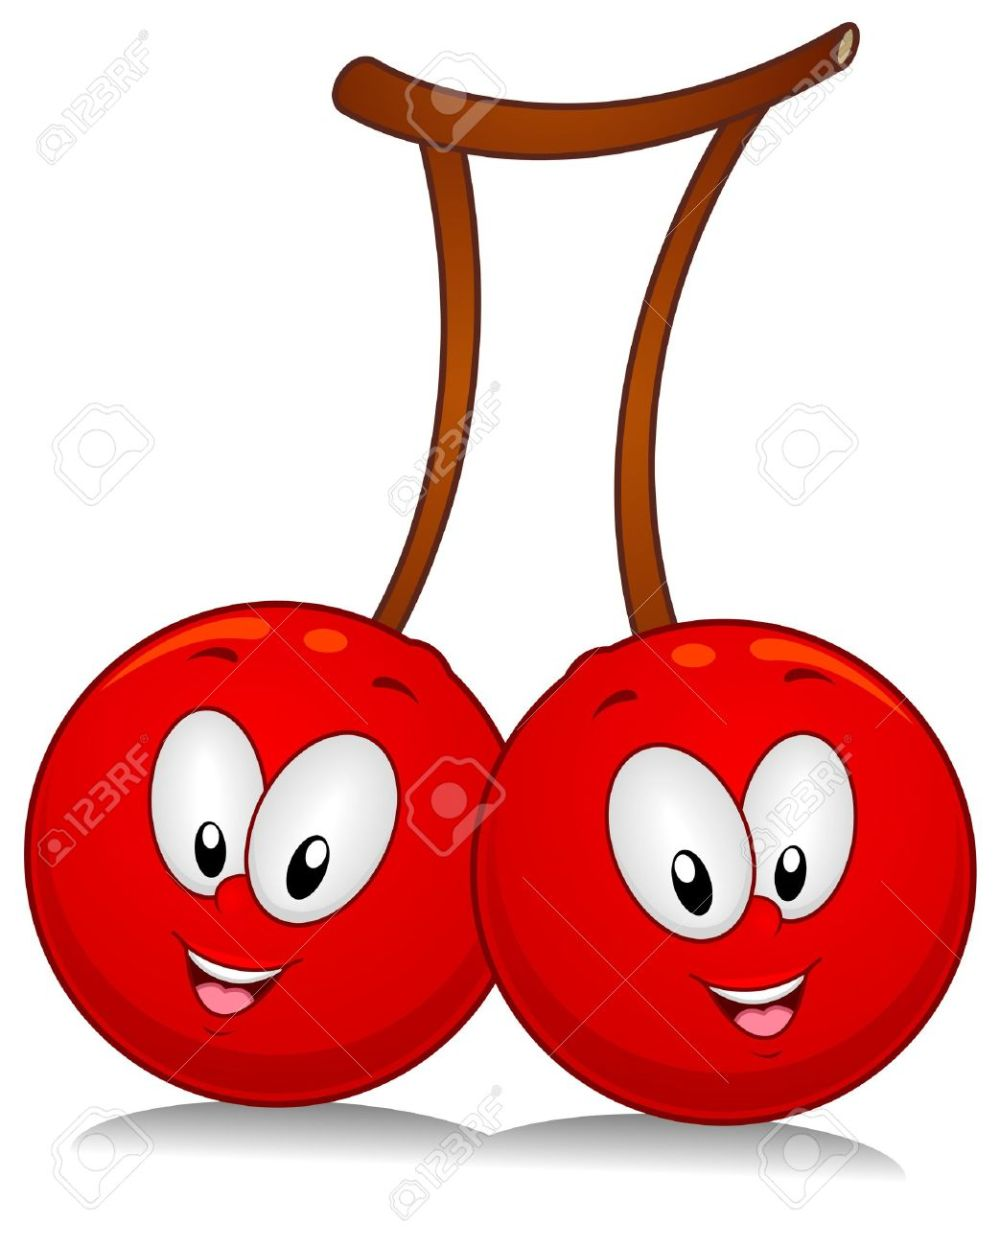 medium resolution of a pair of cherry characters poised sideside stock photo